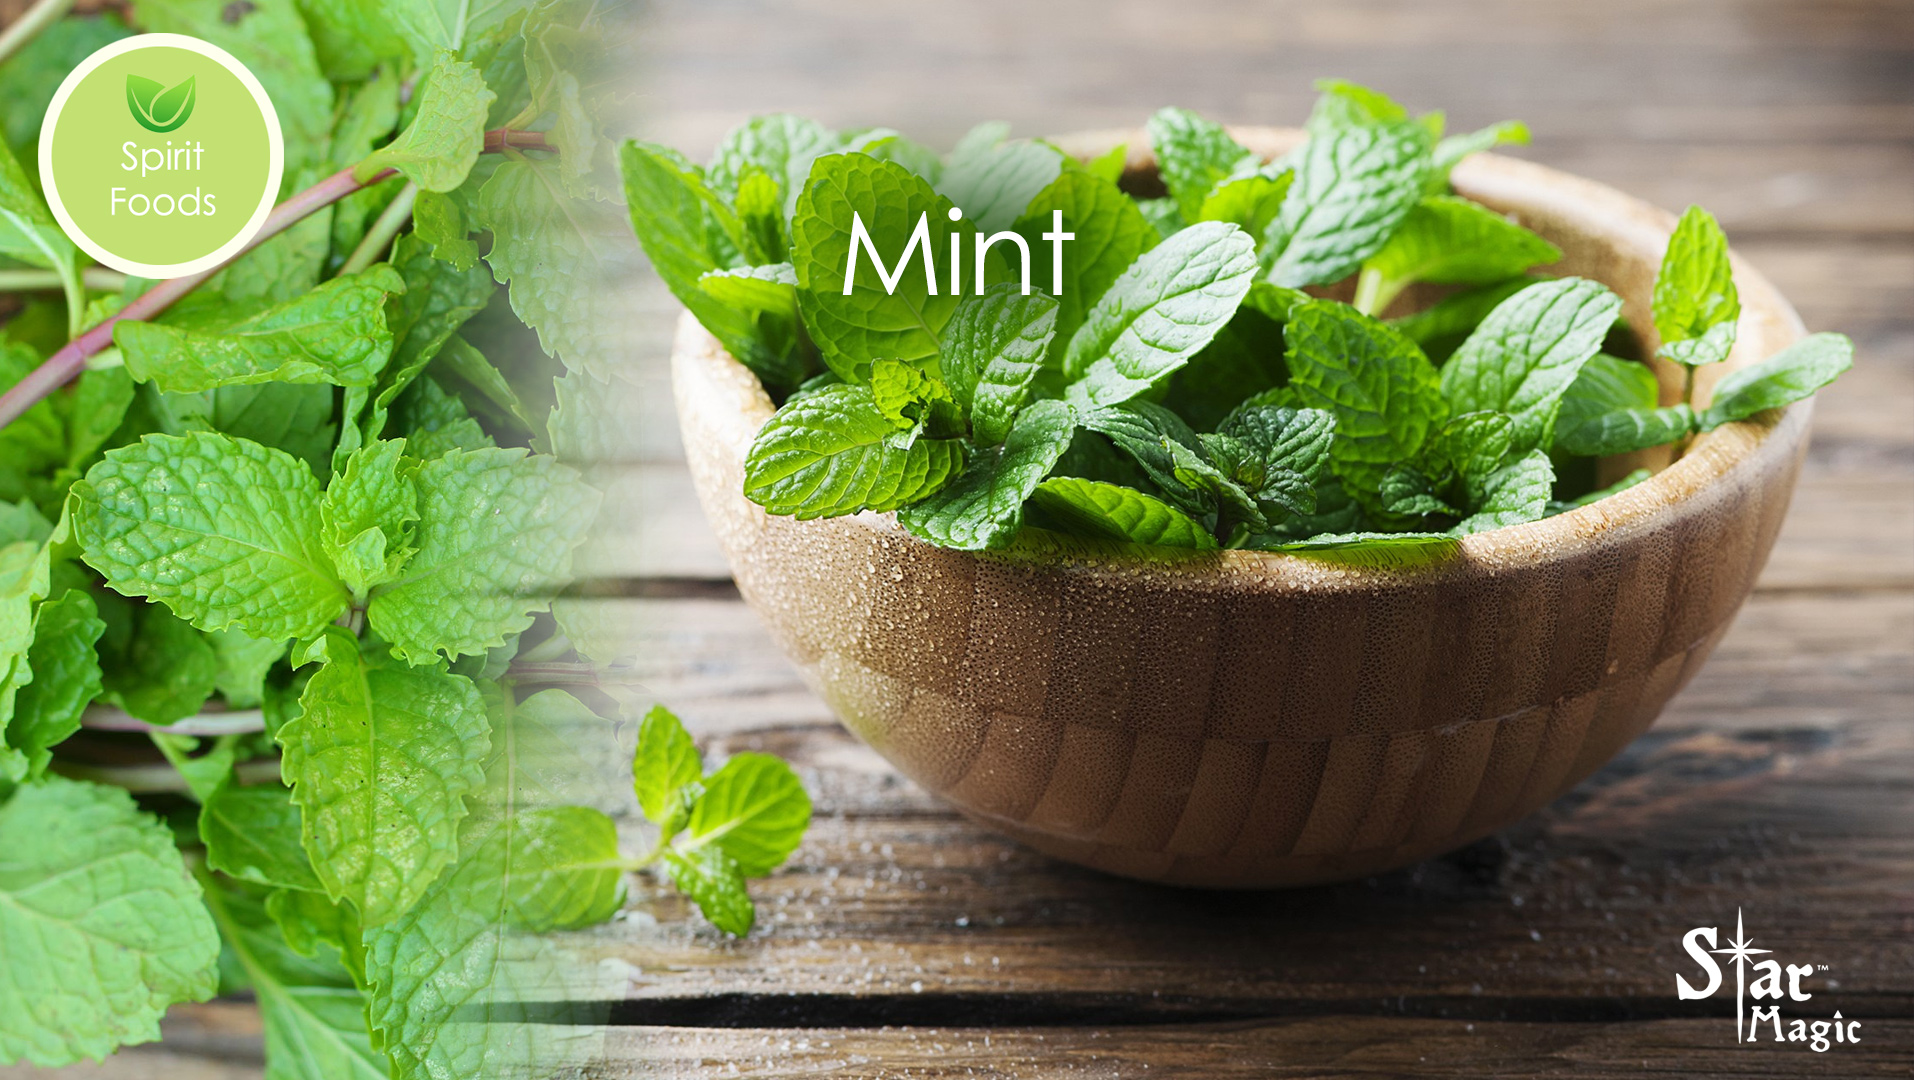 Spirit Food – Mint